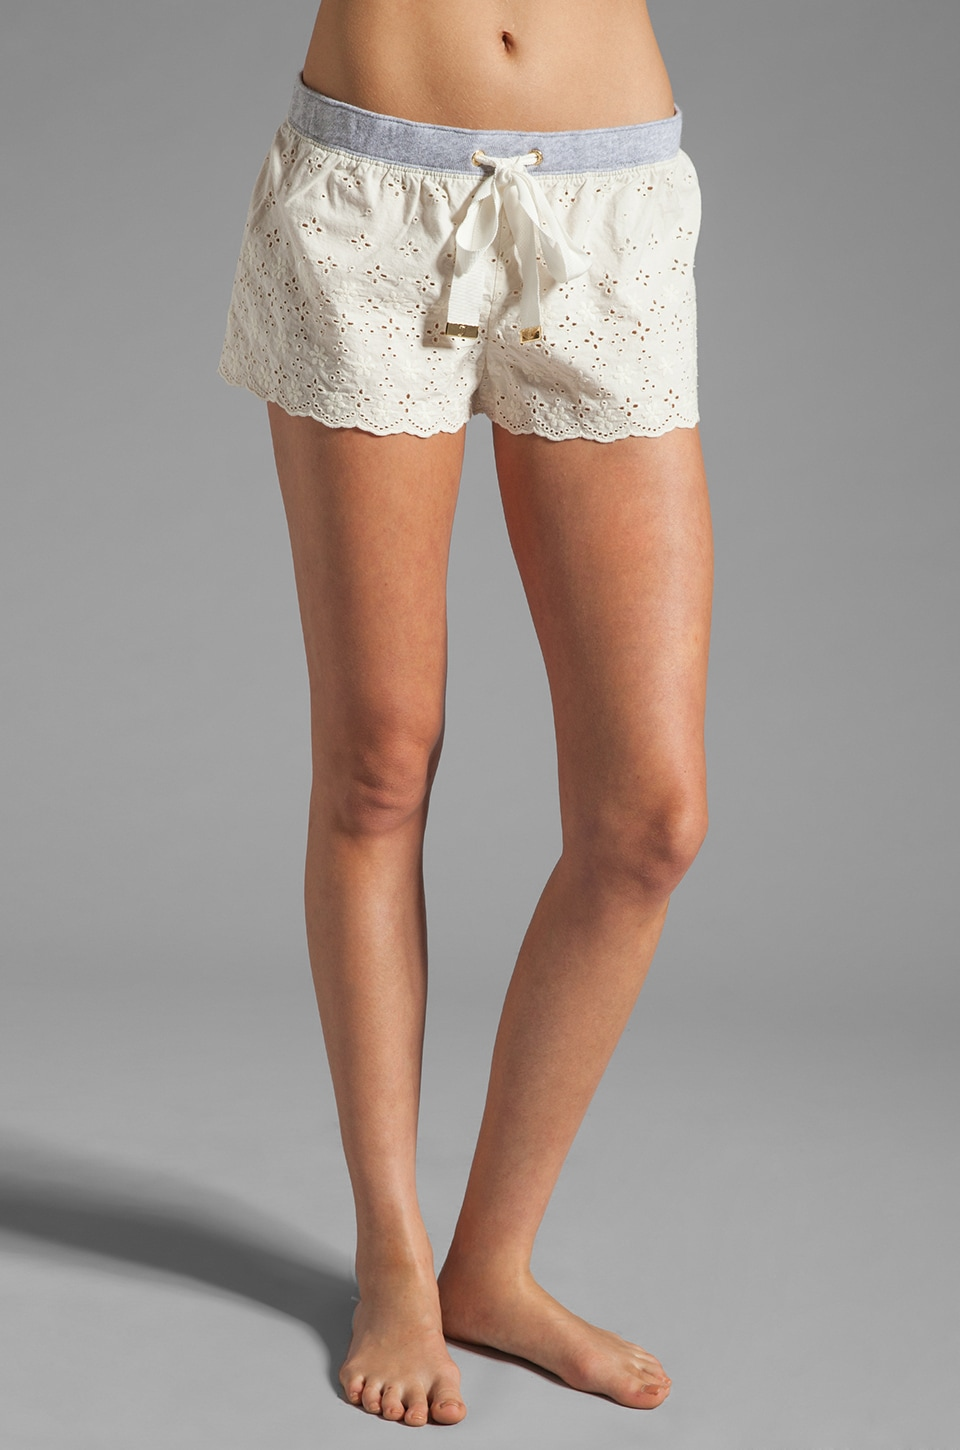 Juicy Couture Eyelet Short in Angel